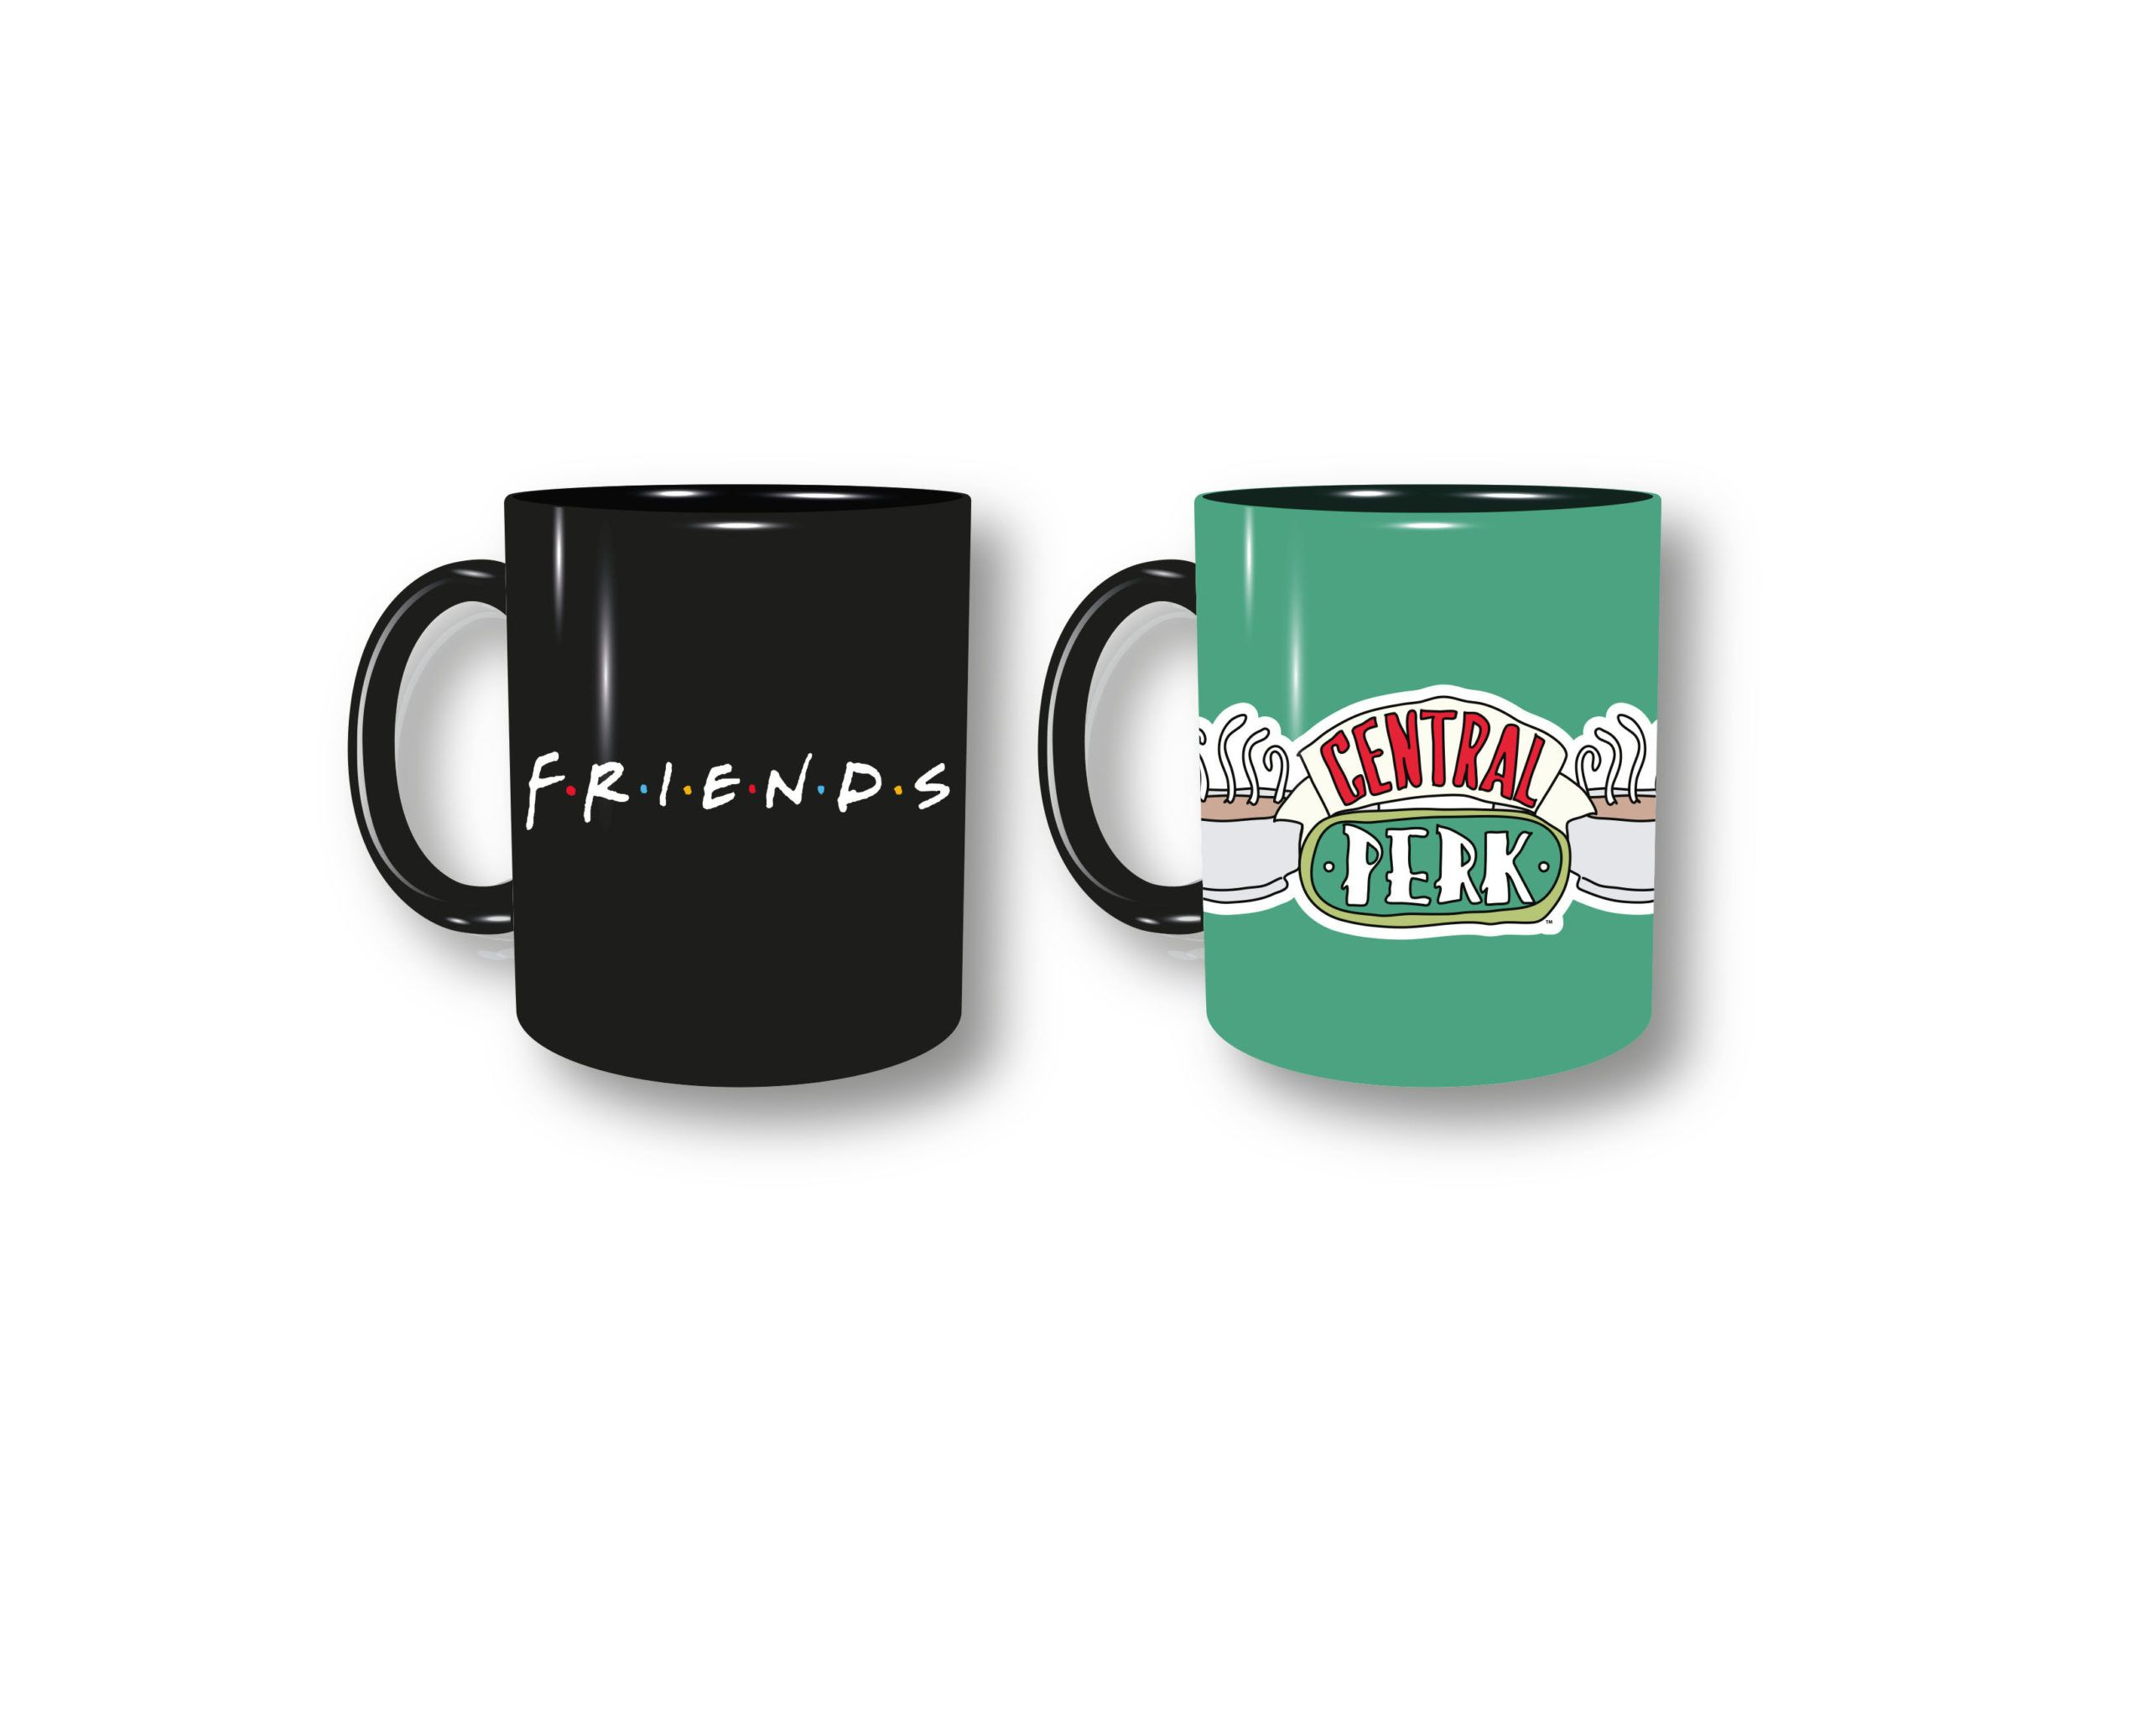 Friends Mug gifting